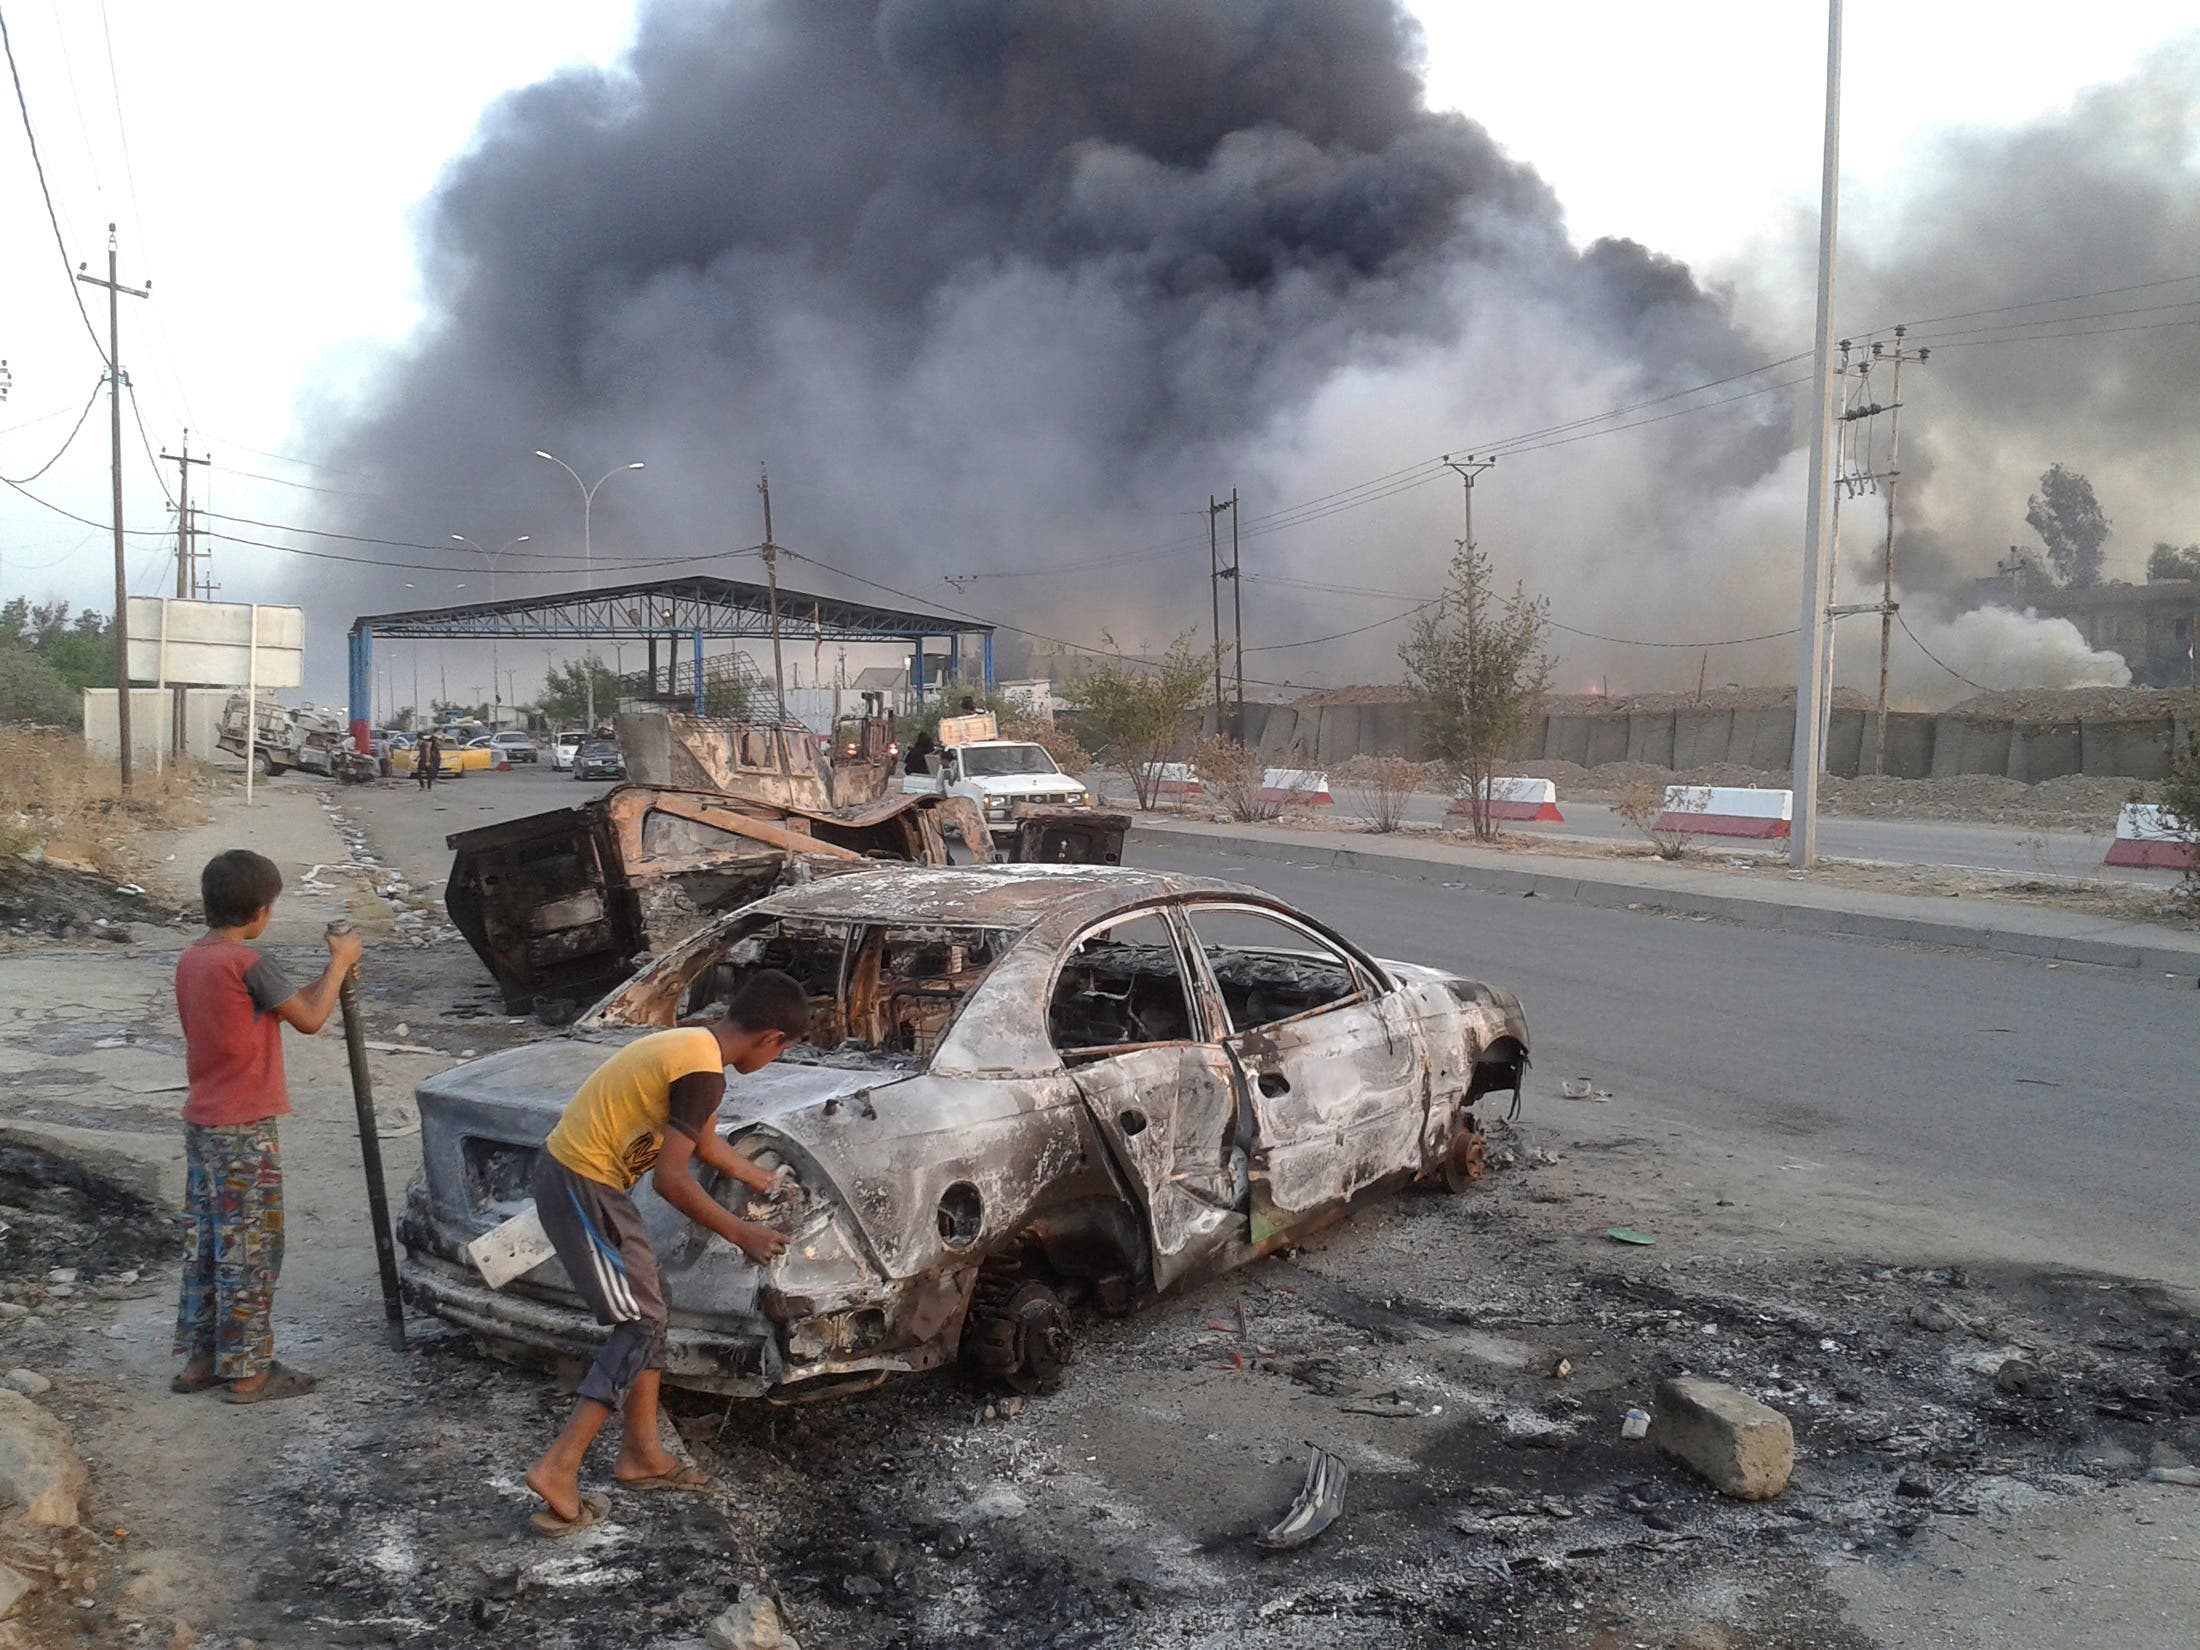 Civilian children stand next to a burnt vehicle during clashes between Iraqi security forces and al Qaeda-linked ISIS in Mosul, Iraq on June 10, 2014. (Reuters)